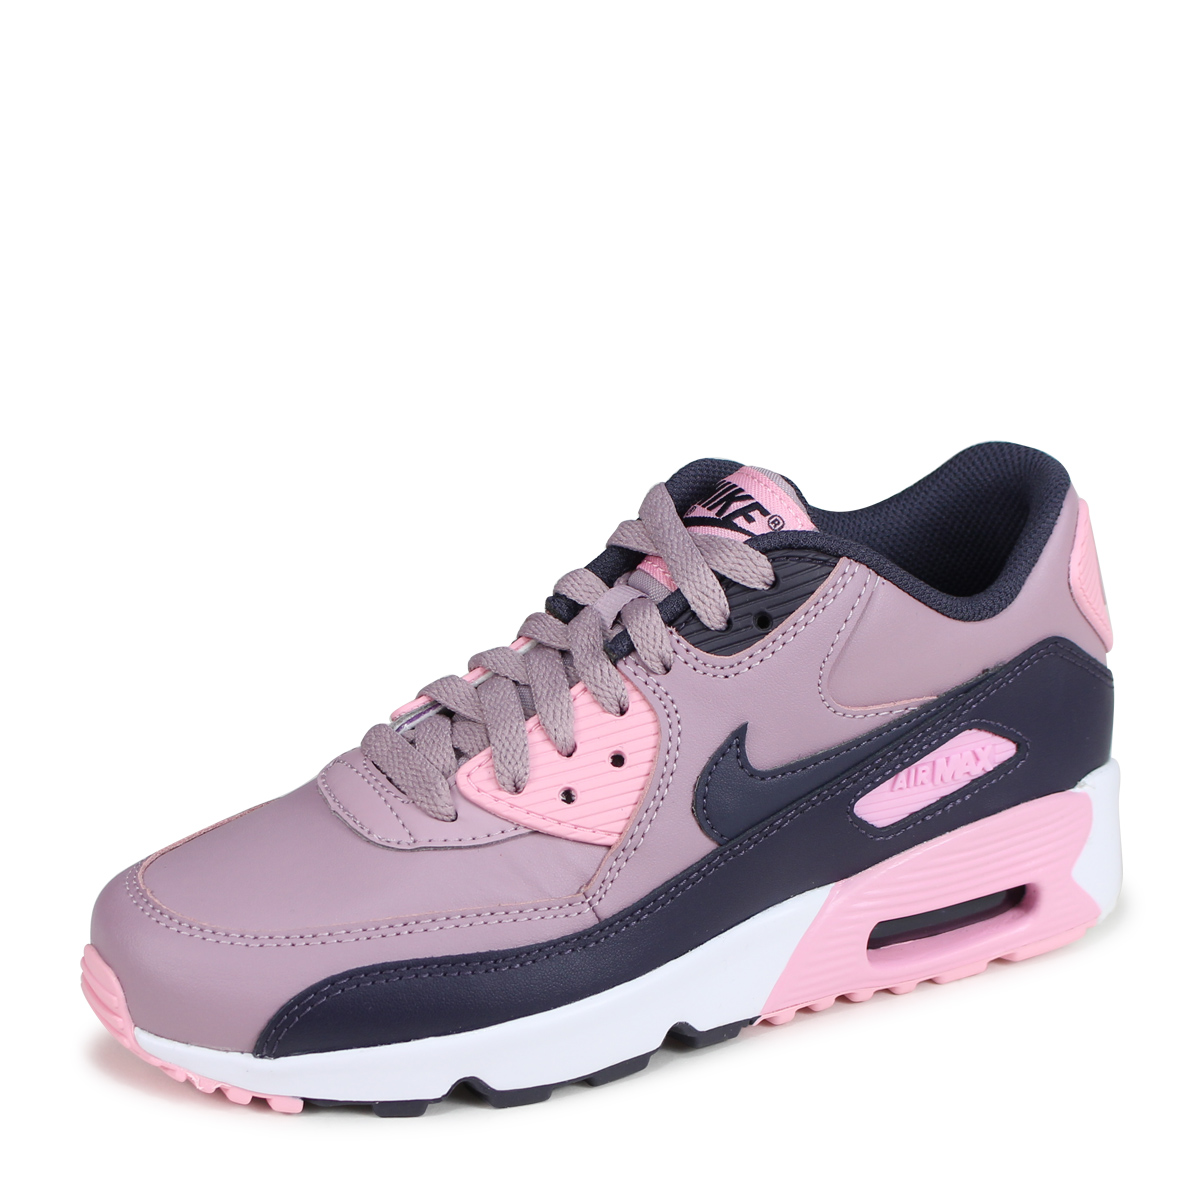 NIKE AIR MAX 90 LEATHER GS Kie Ney AMAX 90 Lady's sneakers 833,376 602 pink [load planned Shinnyu load in reservation product 720 containing] [187]